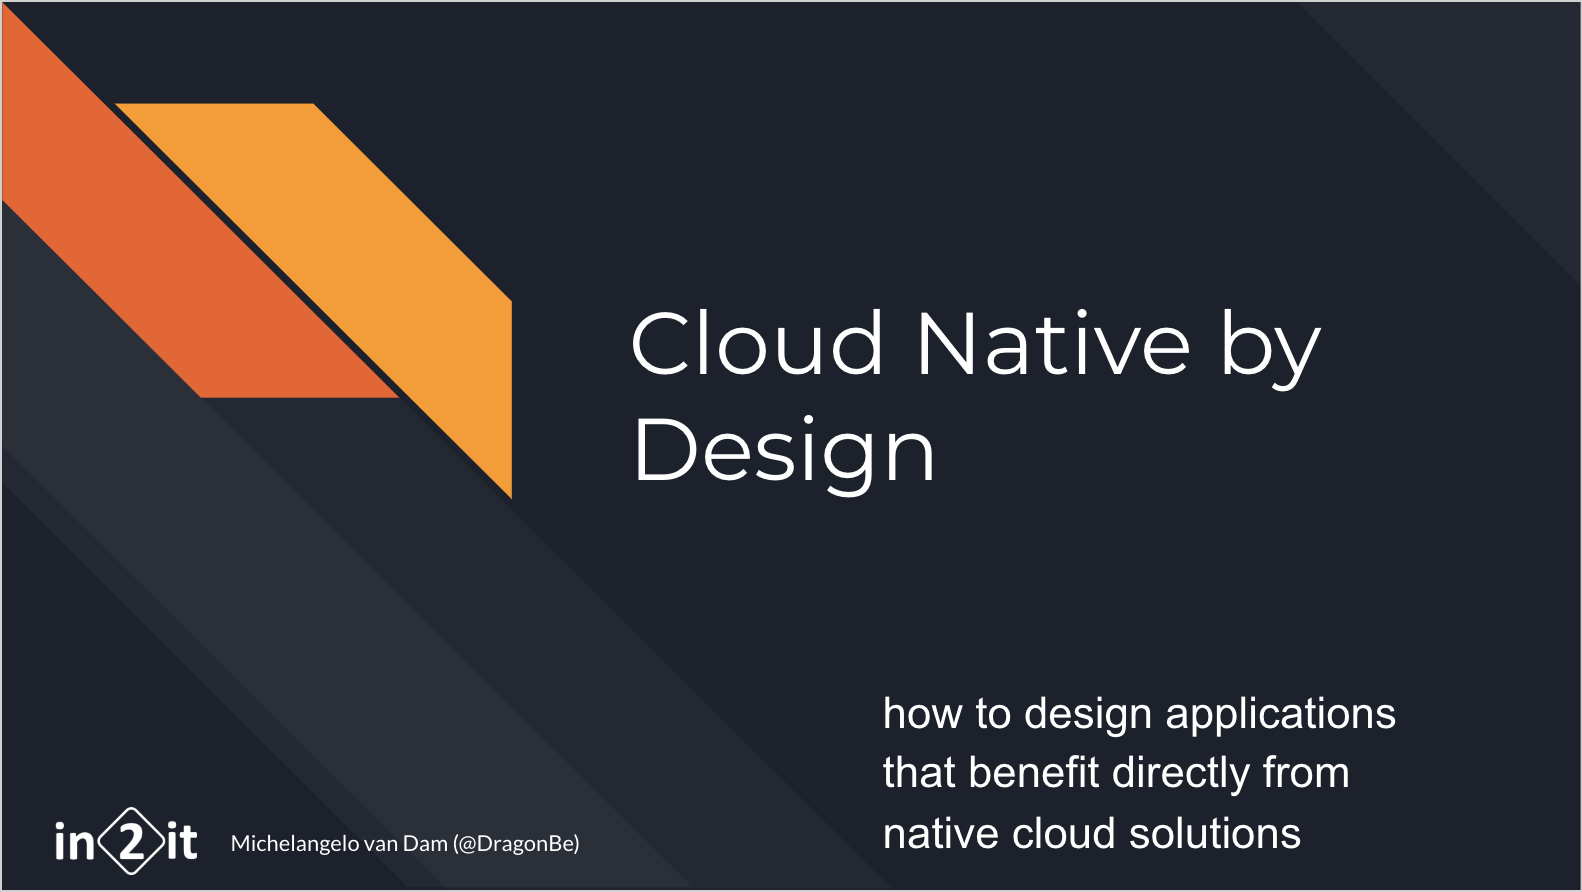 Cloud Native by Design